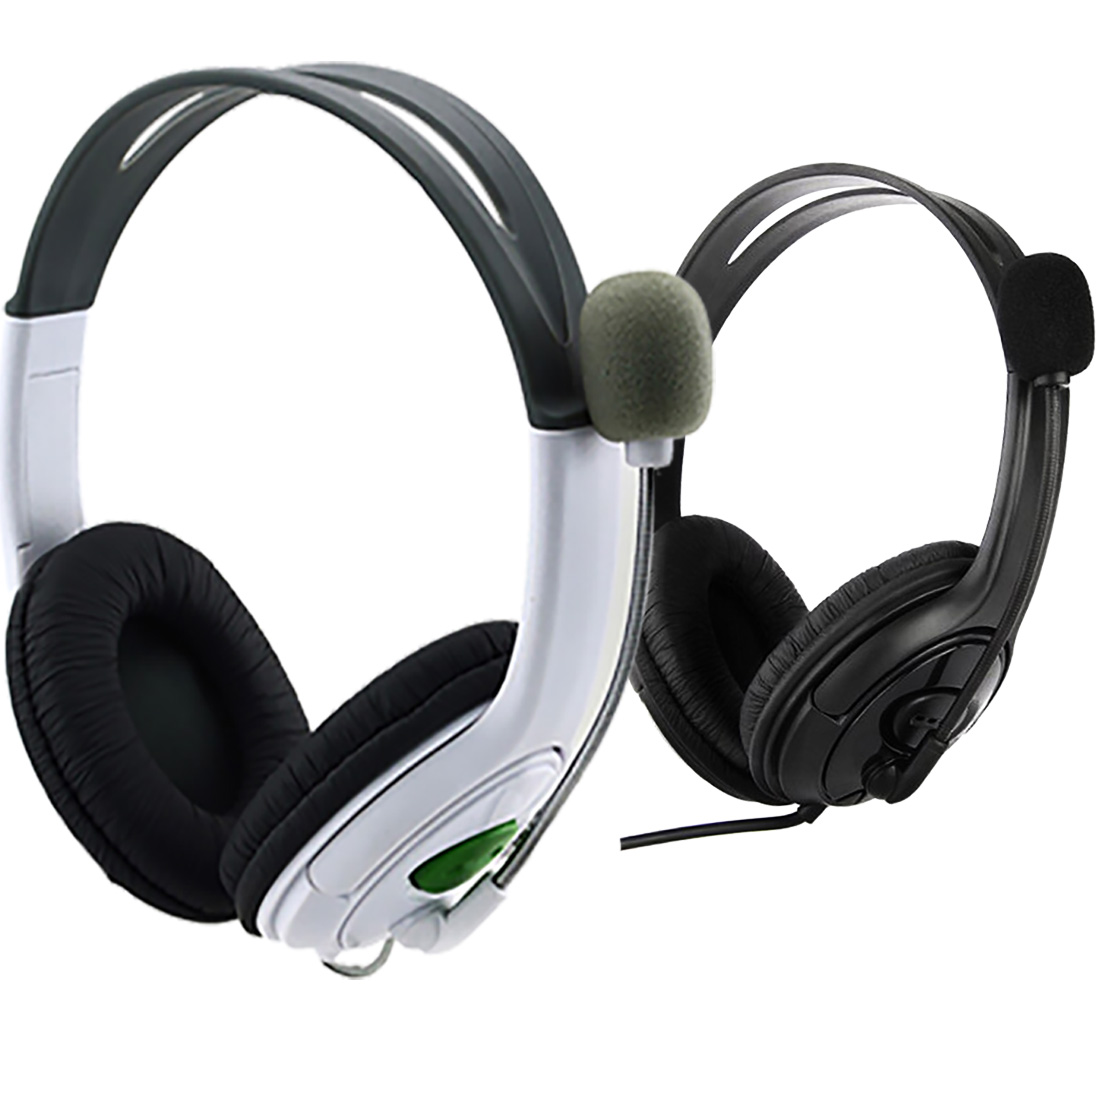 Hot Selling PC Gamer Over-ear Game Gaming Headphone Headset usb dual Earphone Headband with Mic Stereo Bass for ps3 pc hot 3 5mm led illuminated headband style gaming headset headphone with mic for pc wholesale